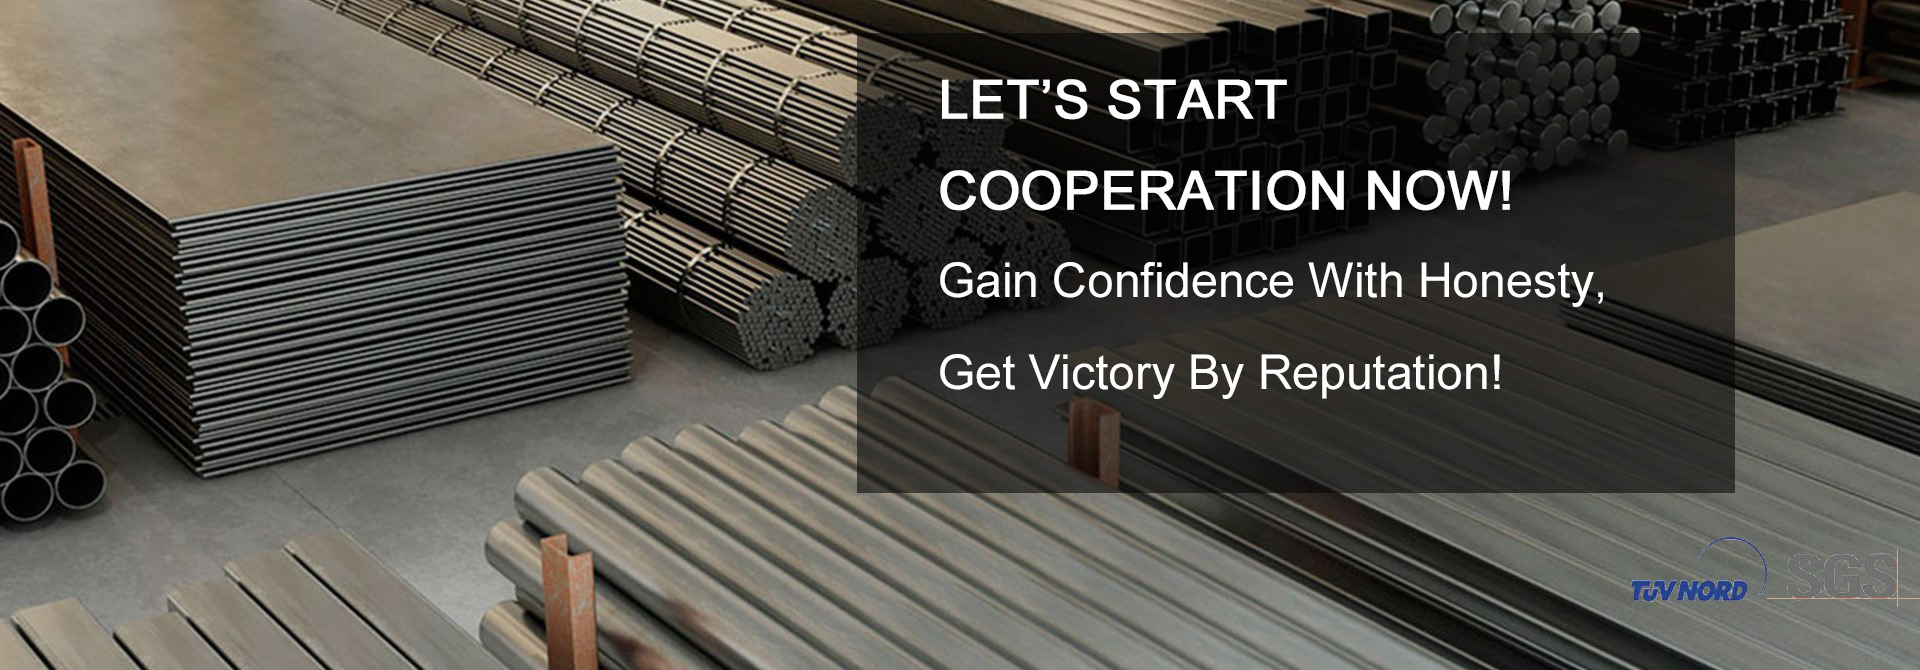 Let's Start Cooperation Now! Gain Confidence With Honesty, Get Victoty By Reputation!